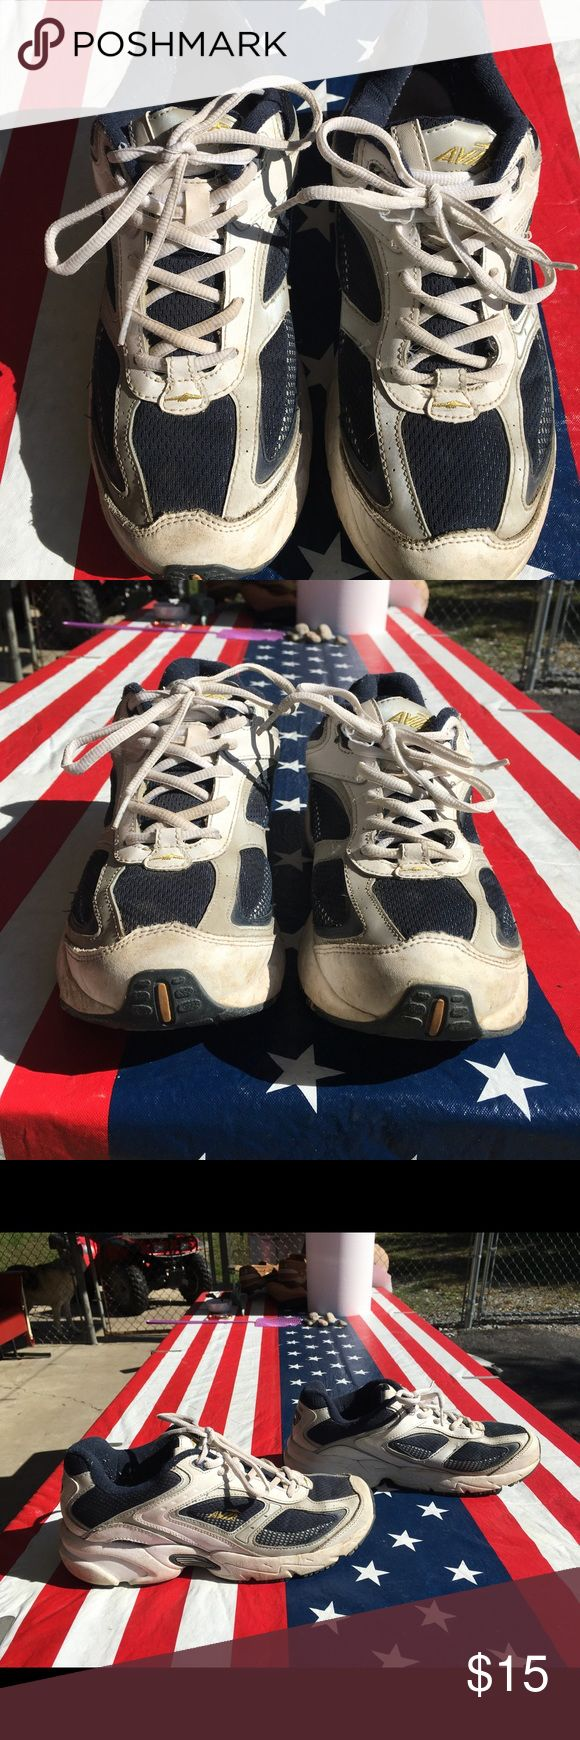 Men's Avia Cantilever Running Shoes Blue, white and gray. Size 9.5. These have been worn. They show some dirt, but tread looks in good condition. Avia Shoes Sneakers